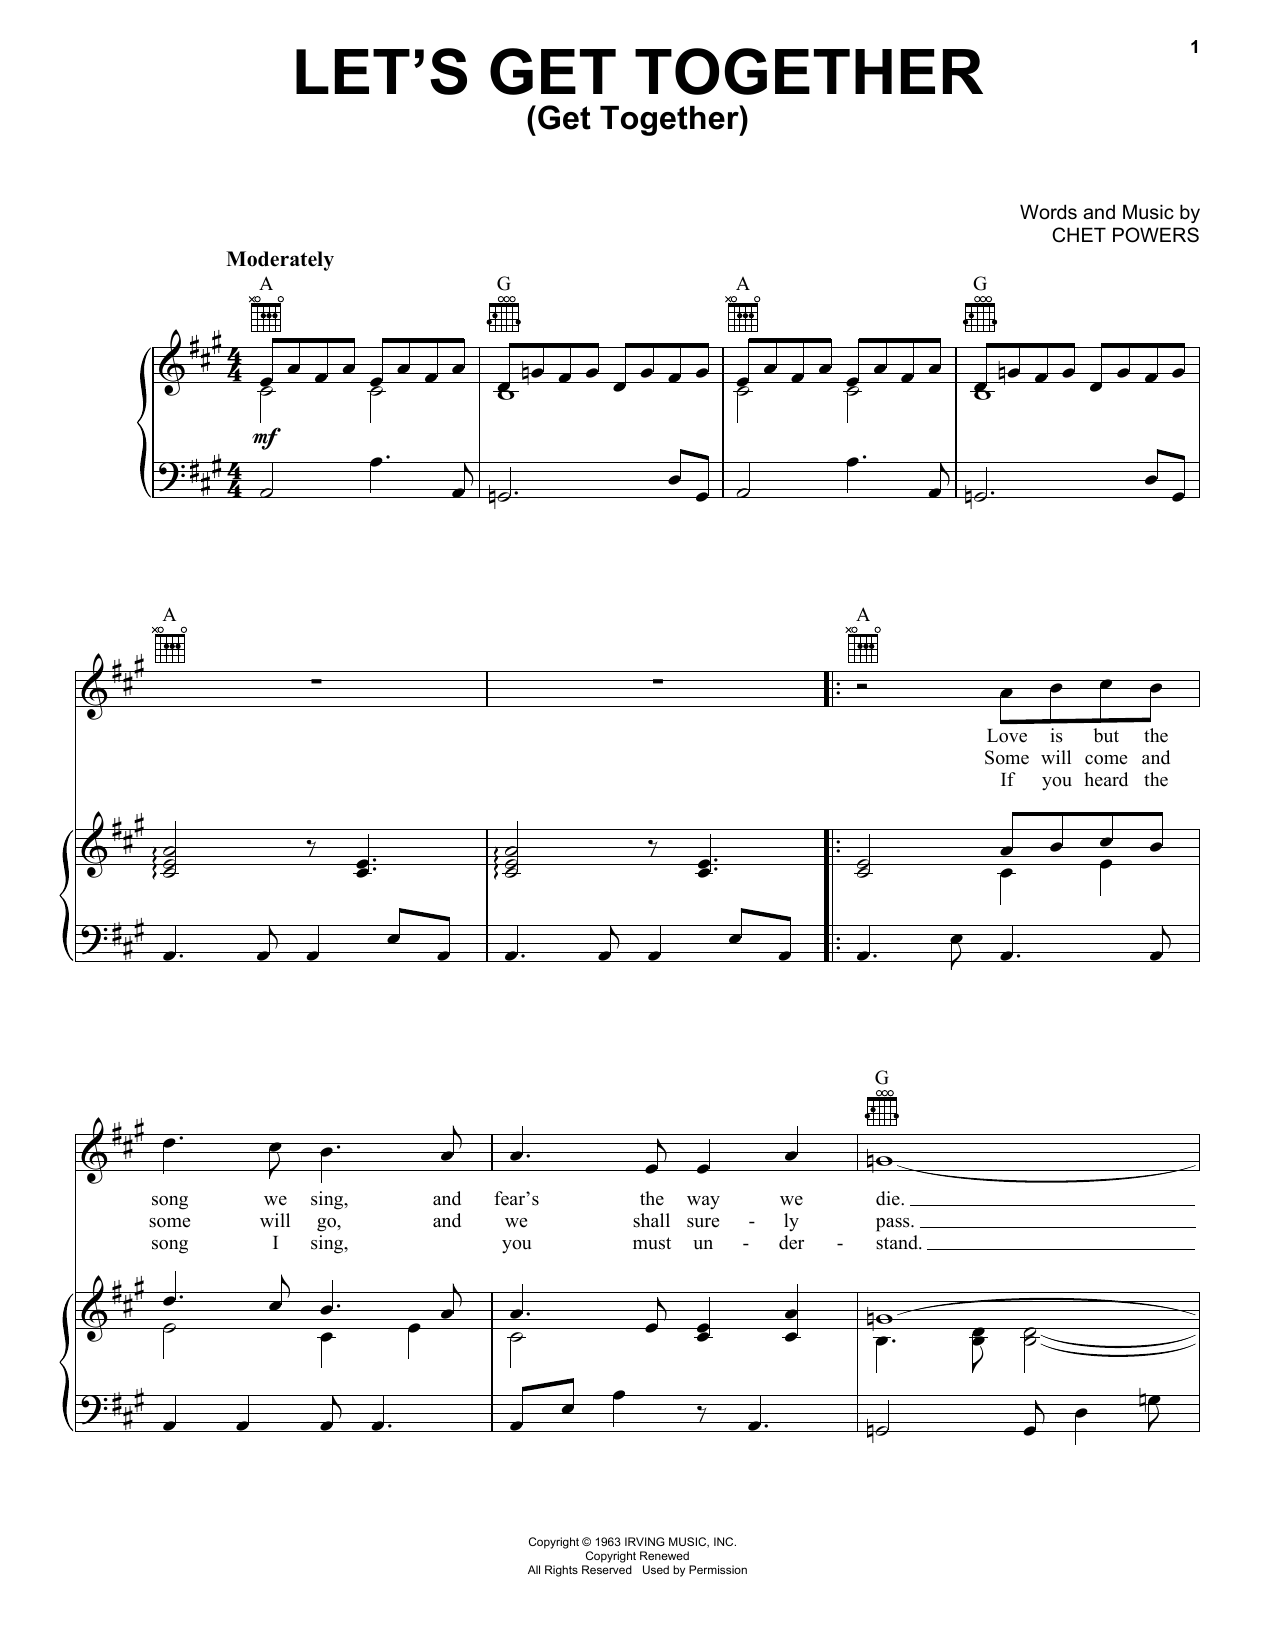 Let's Get Together sheet music for voice, piano or guitar by Chet Powers